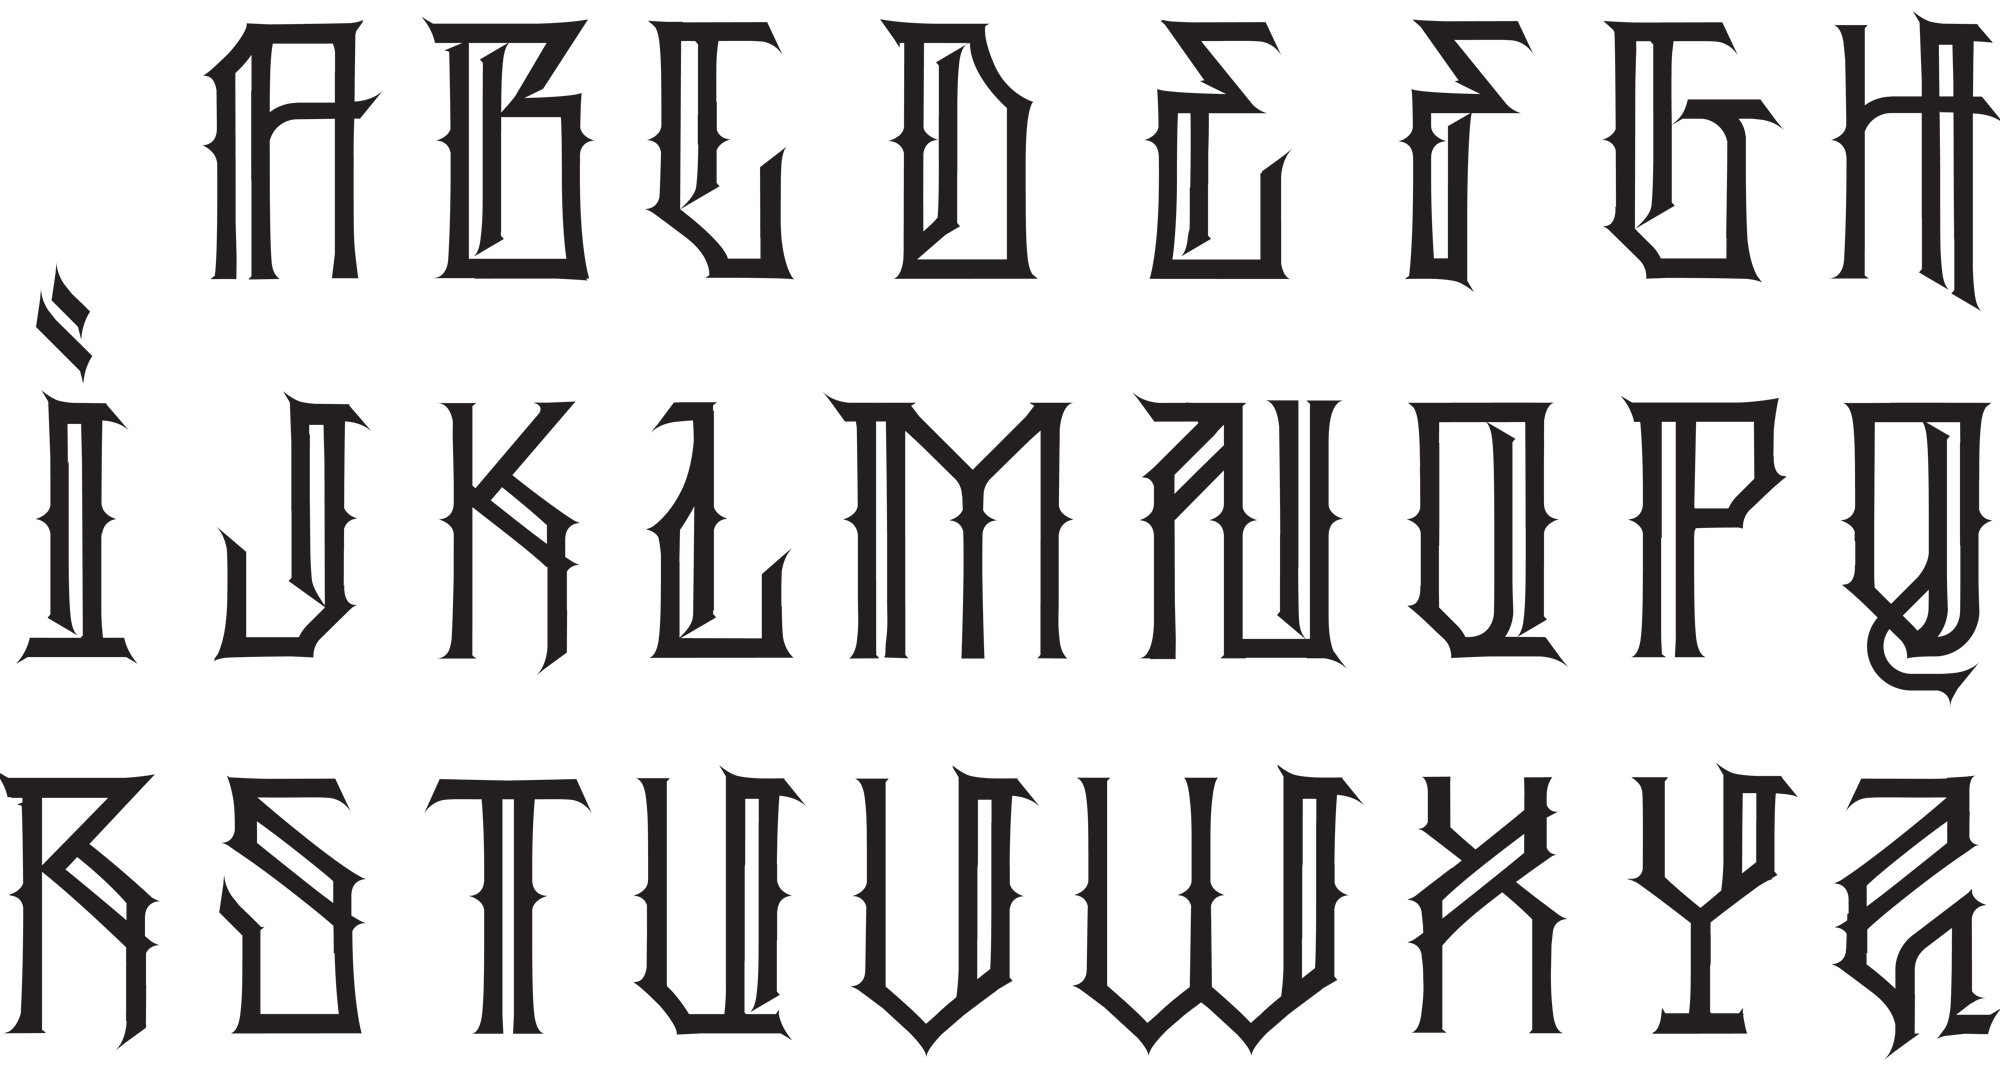 Essay clipart penmanship. Letters of death anders